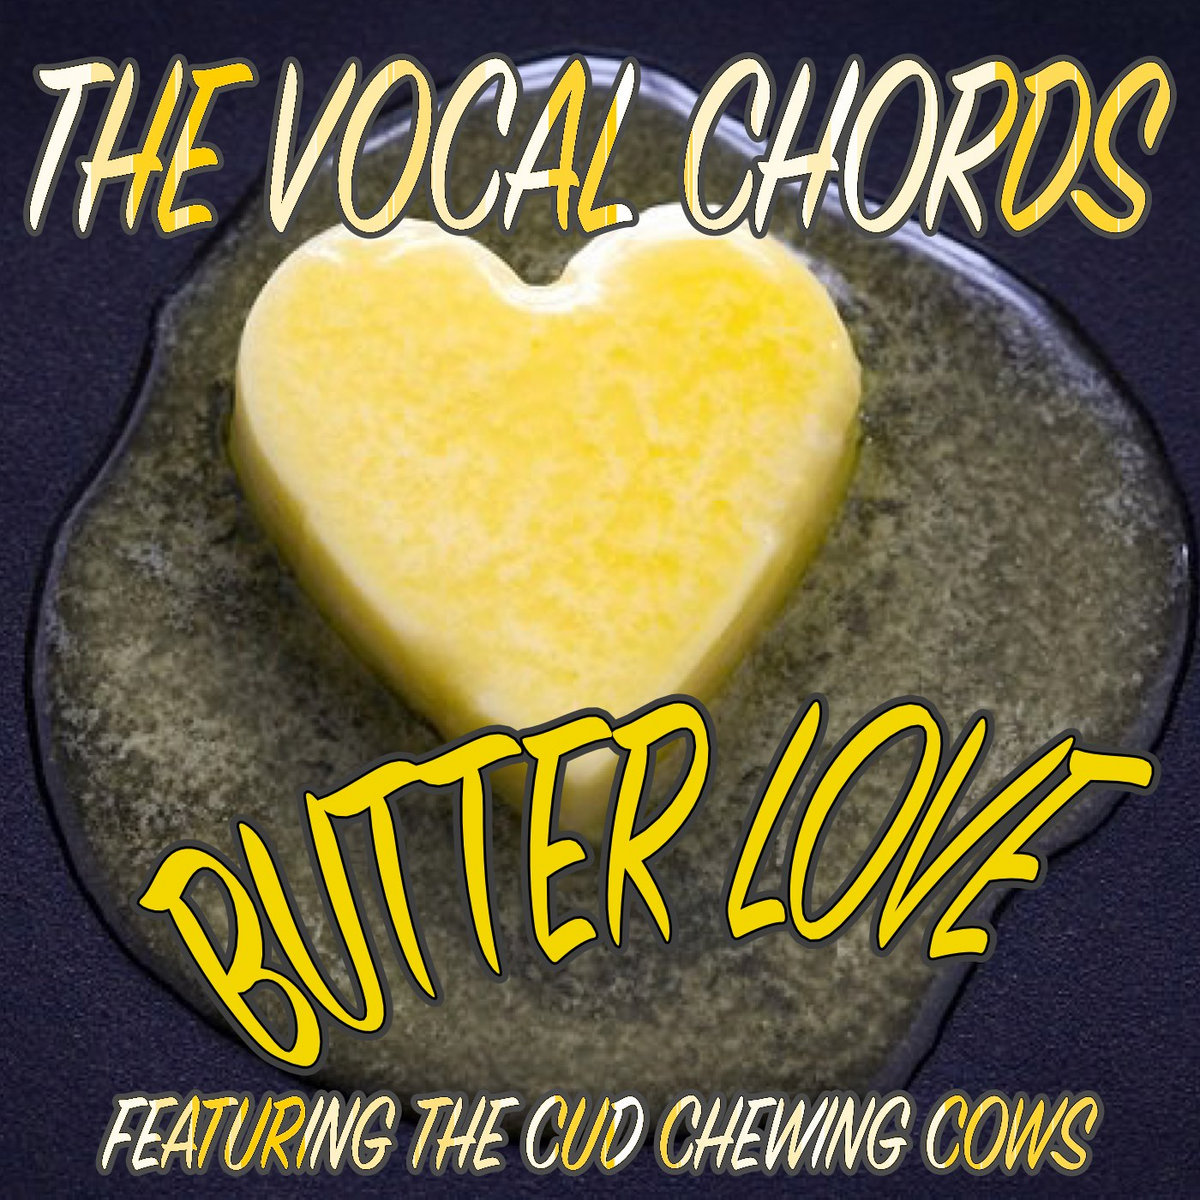 Baby its you the vocal chords baby its you from butter love by the vocal chords feat the cud chewing cows hexwebz Images